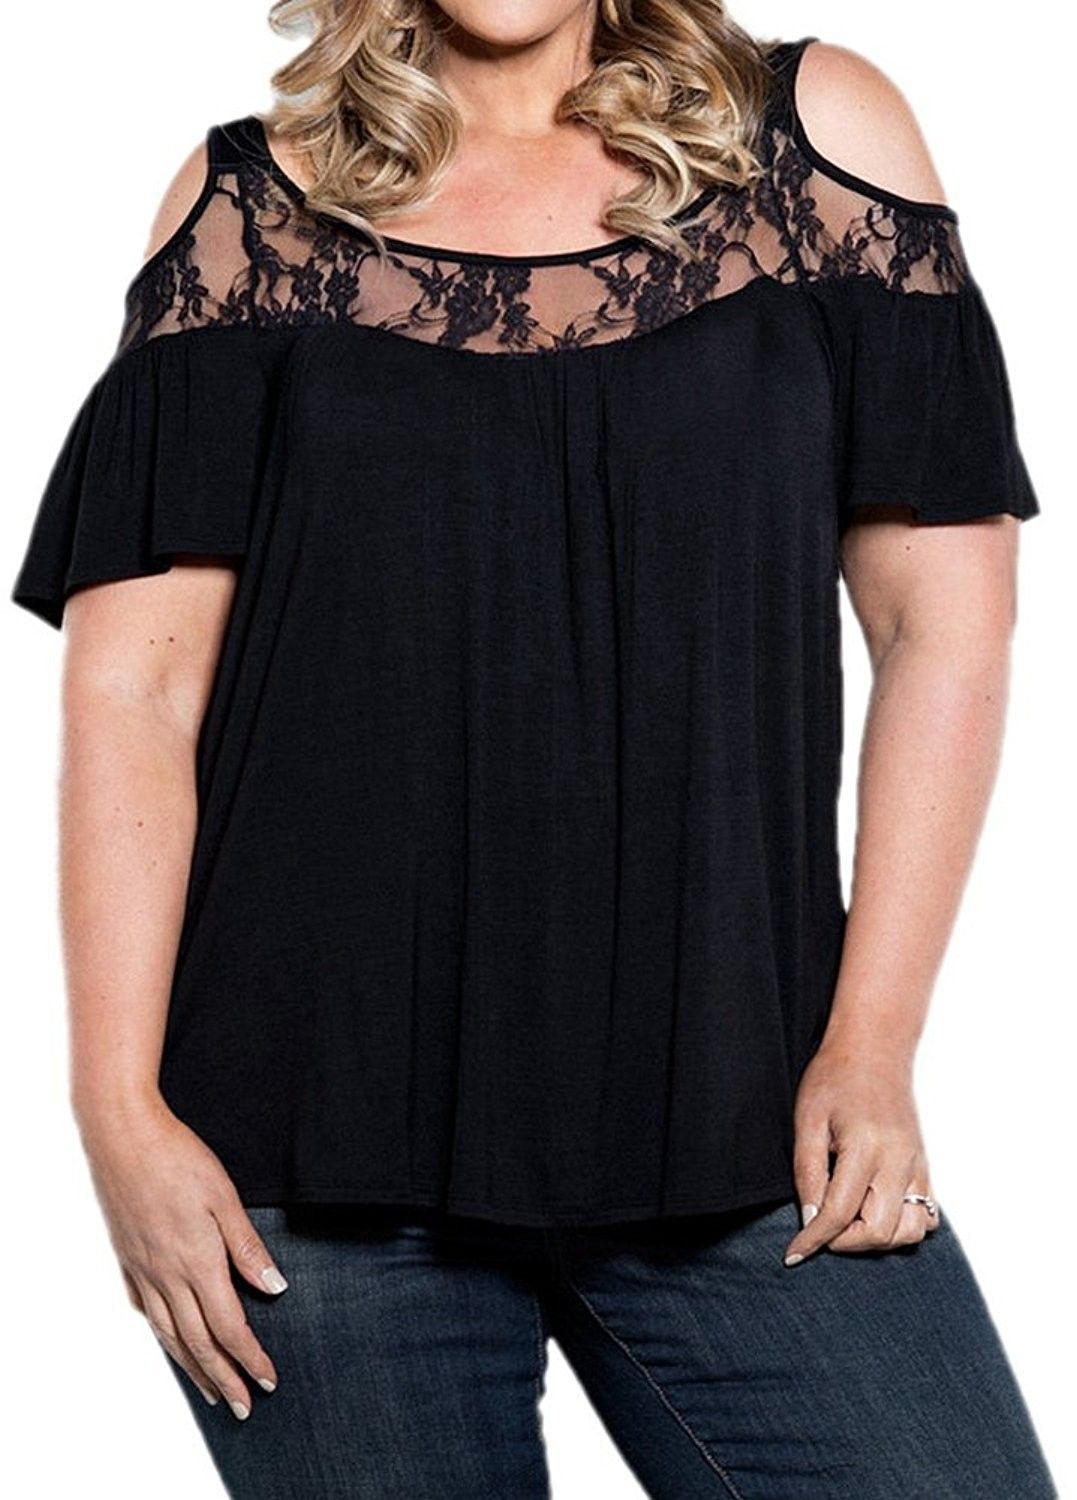 134f54abe79 Women's Clothing, Tops & Tees, Knits & Tees, Women's Off The Shoulder  Classic